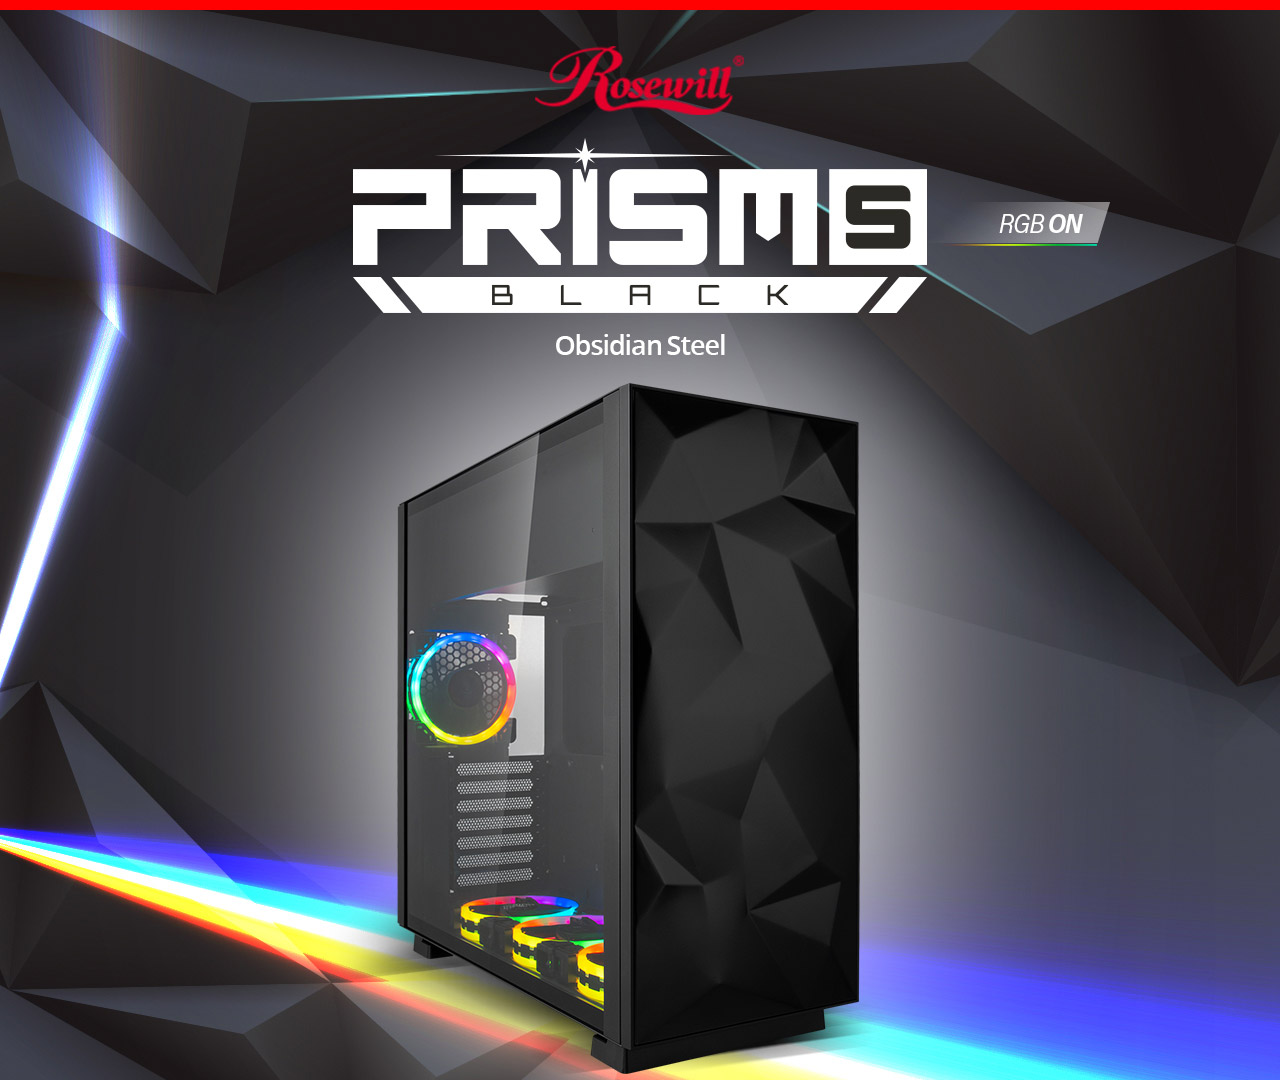 Rosewill ATX Mid Tower Gaming PC Computer Case with RGB Angled to the Right with Graphics and Text Indicating: Rosewill PRISM S RGB ON BLACK Obsidian Steel